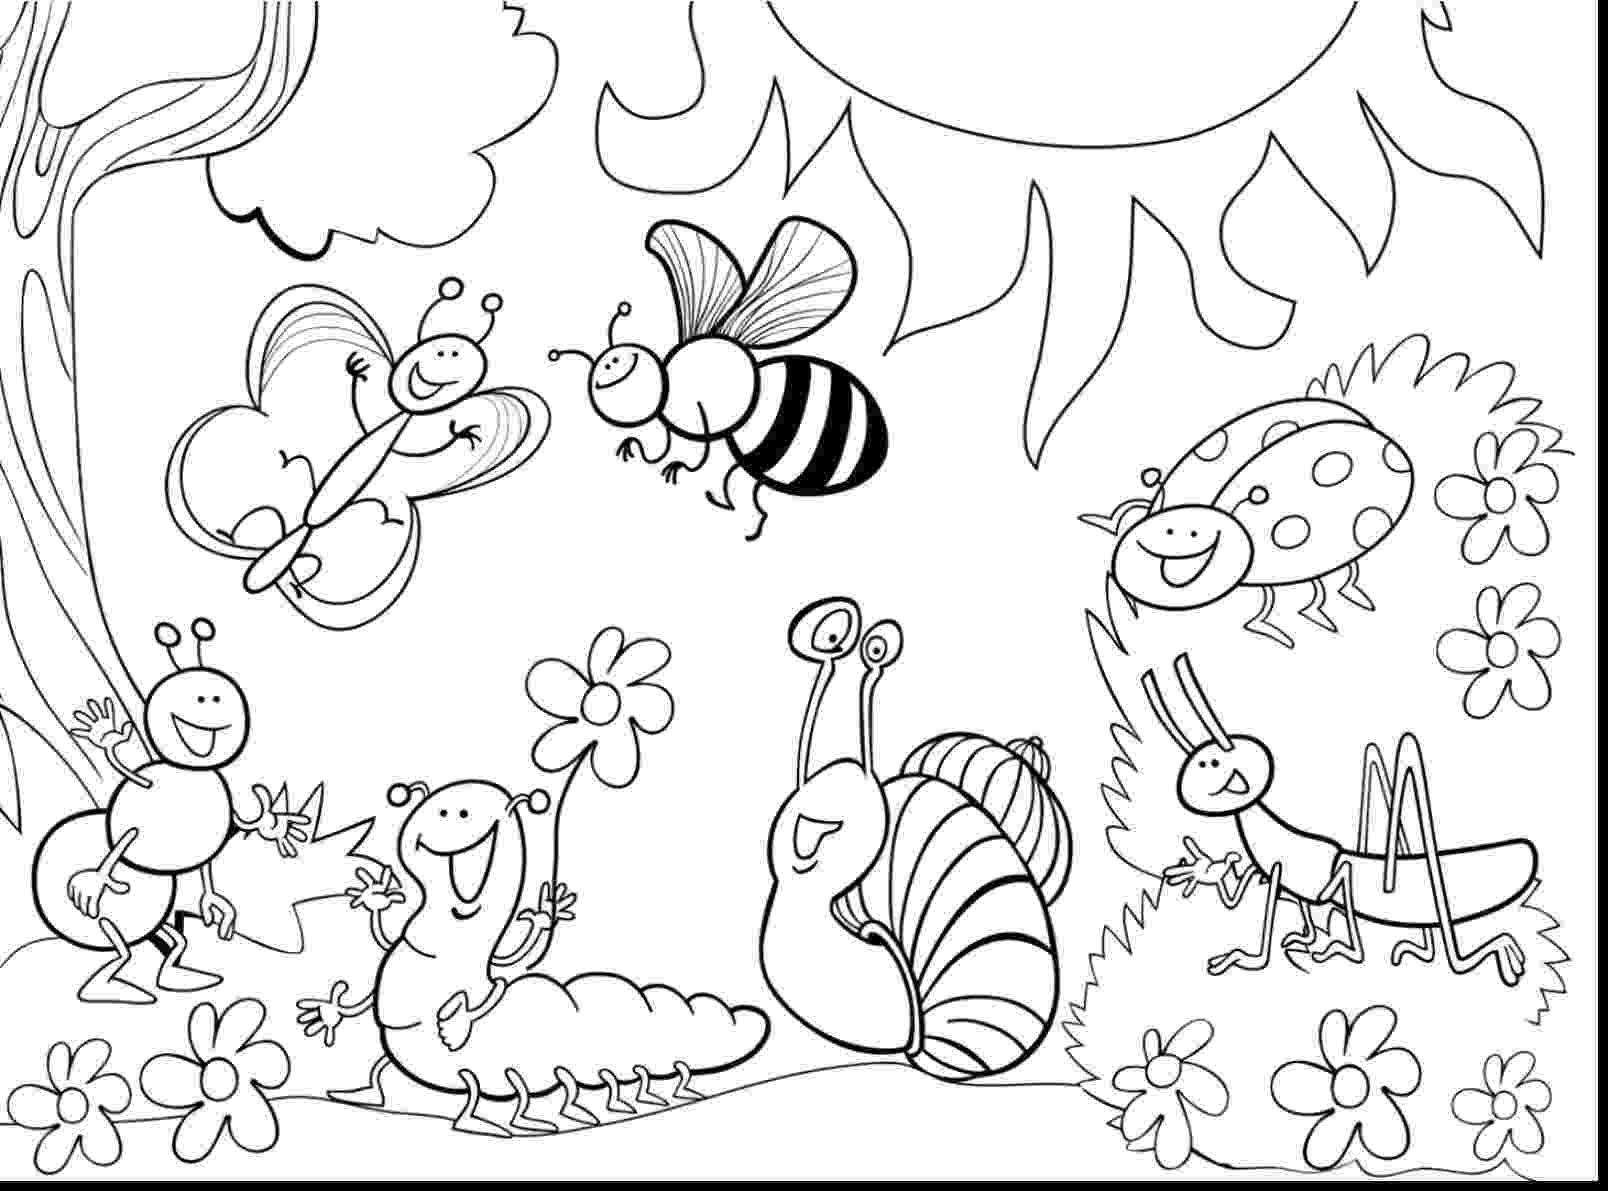 bugs colouring pages printable bug coloring pages for kids cool2bkids bugs pages colouring